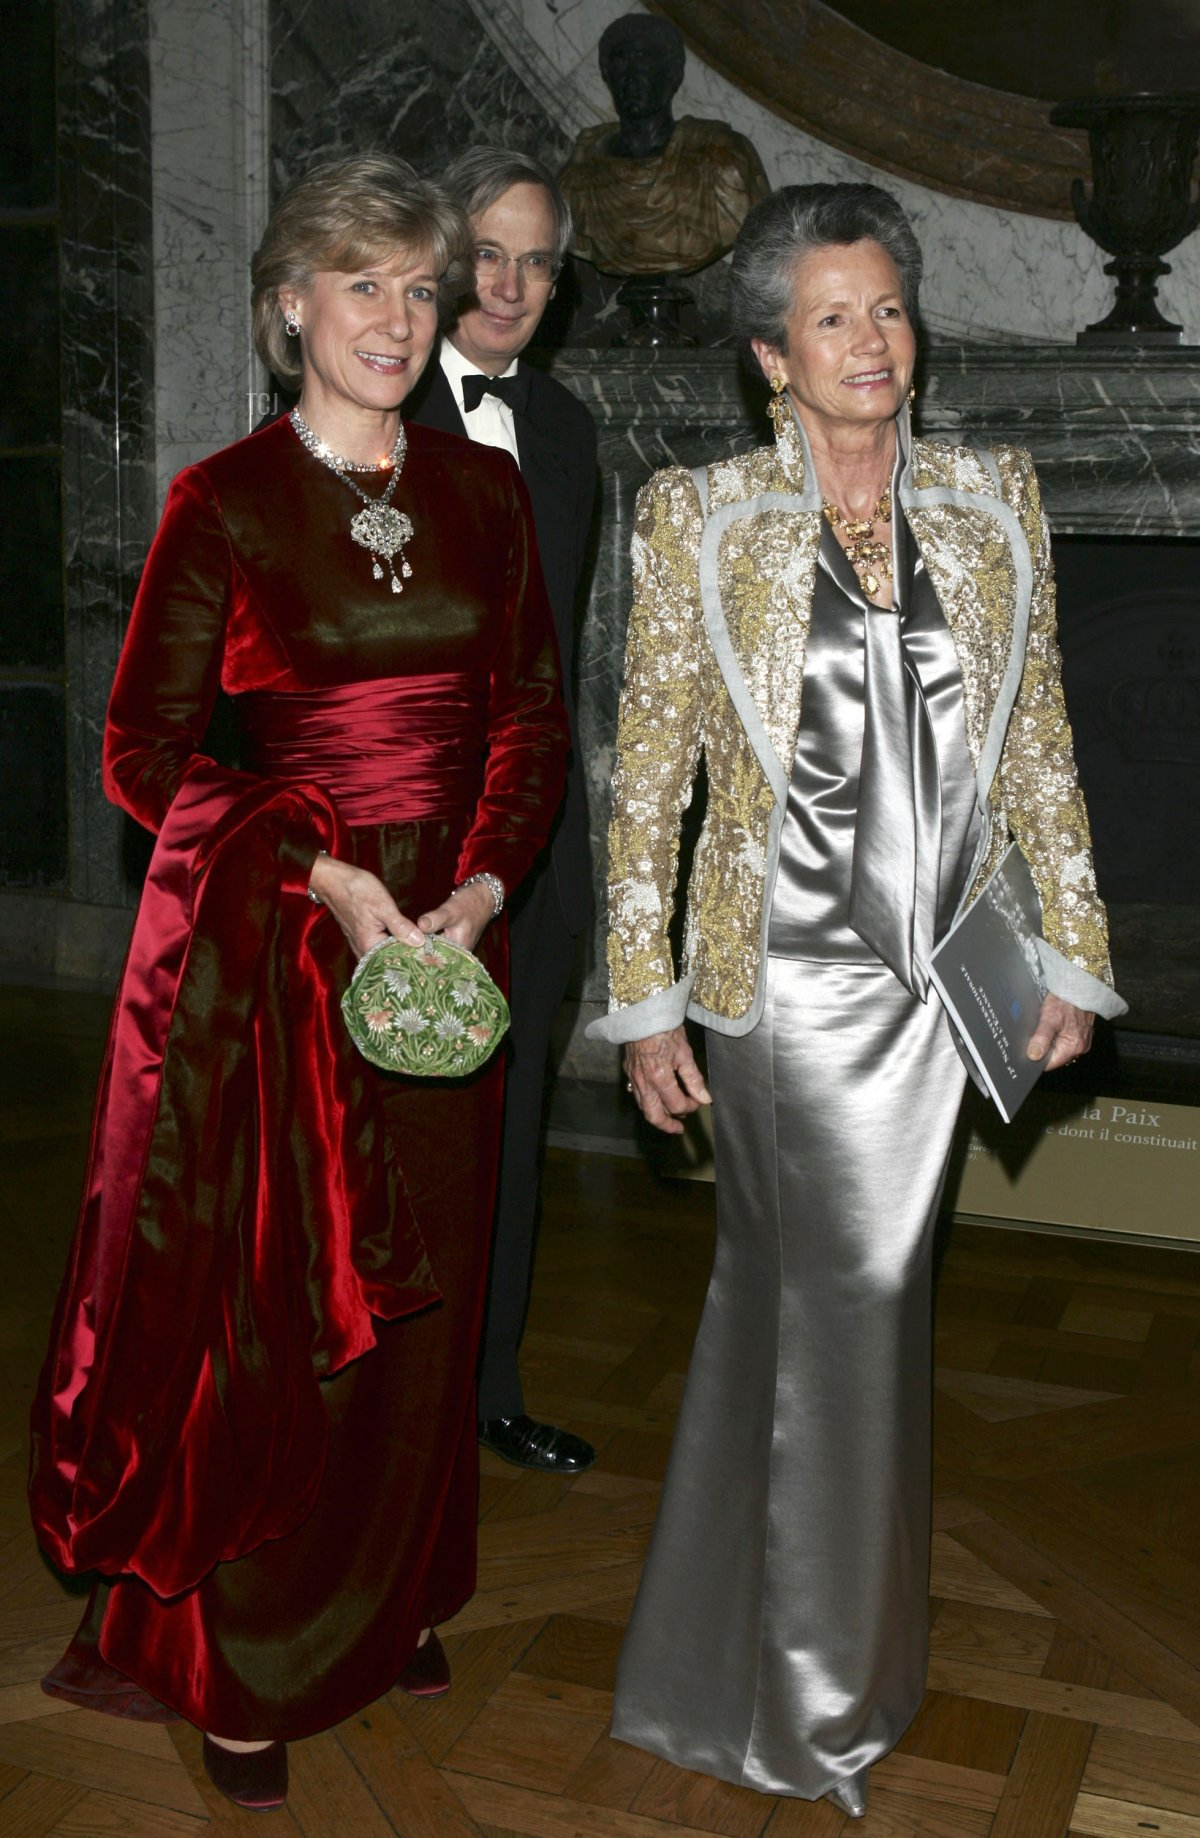 The Duchess of Gloucester, her husband Duke of Gloucester, and Anne-Aymone Giscard d'Estaing attend the Child Abuse Foundation Gala at the Castle of Versailles on December 6, 2004 in Versailles, France